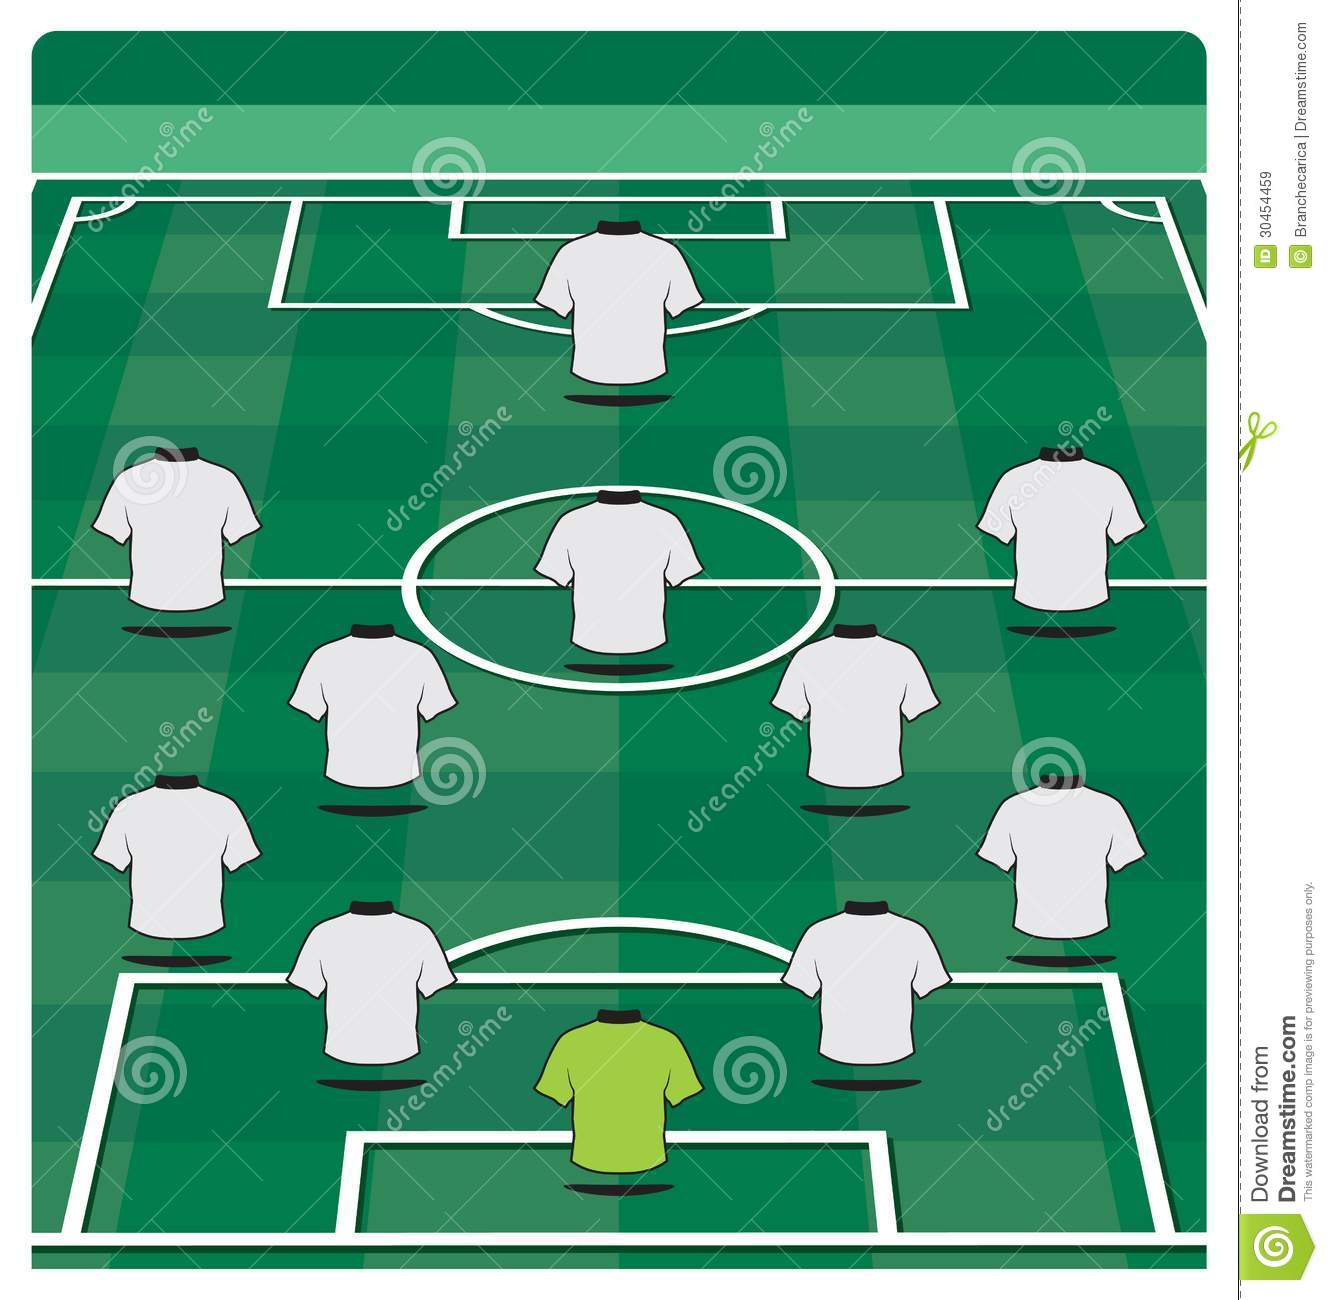 soccer field layout with formation stock vector illustration of